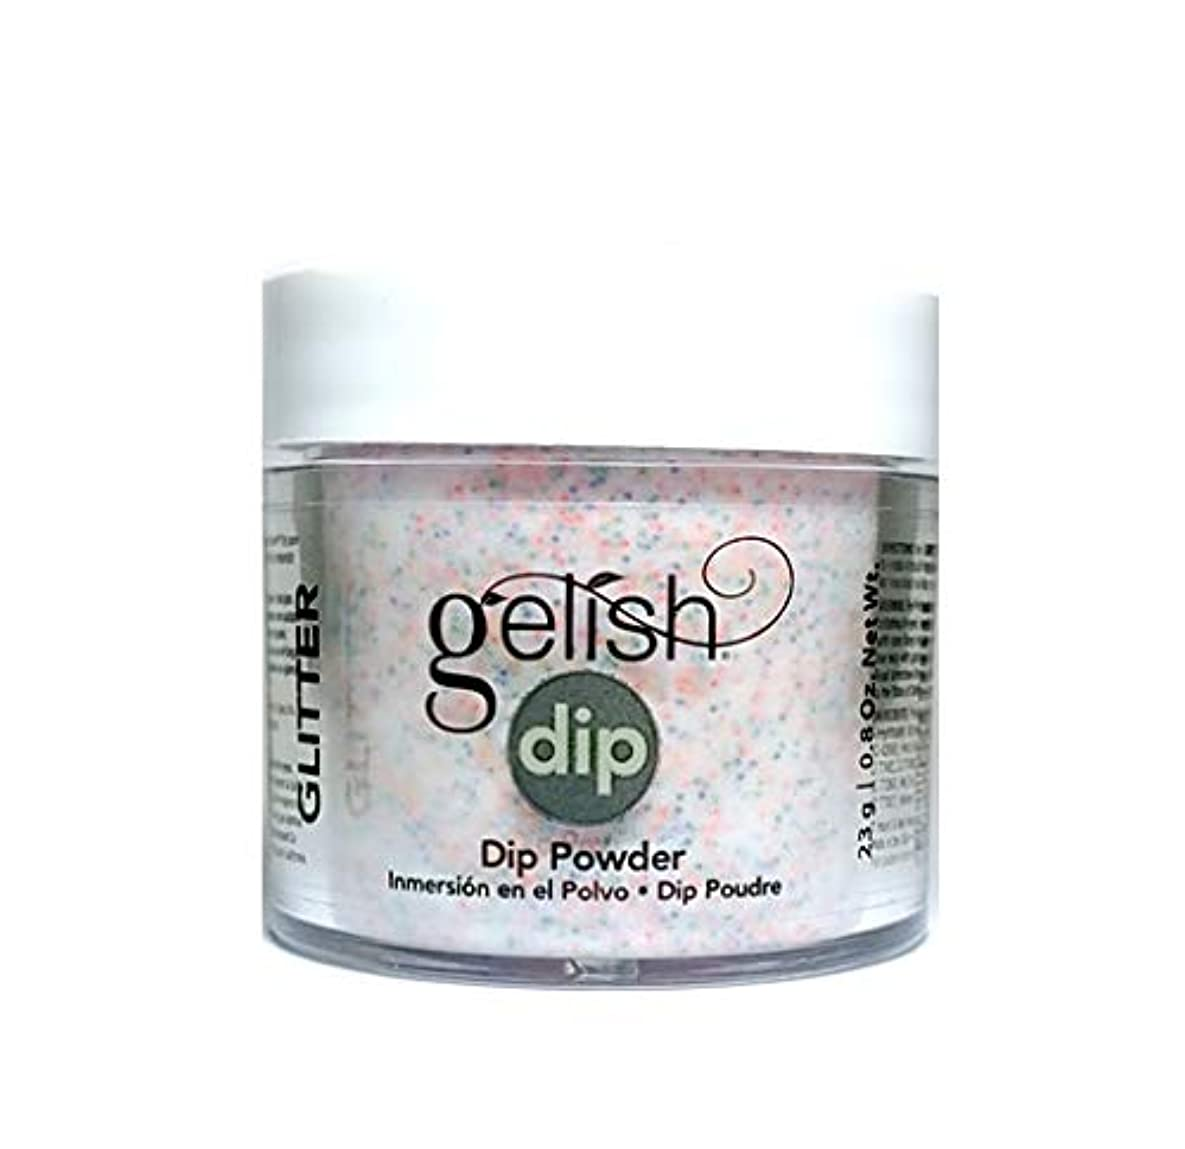 架空の気取らない暗唱するHarmony Gelish - Dip Powder - Lots Of Dots - 23g / 0.8oz